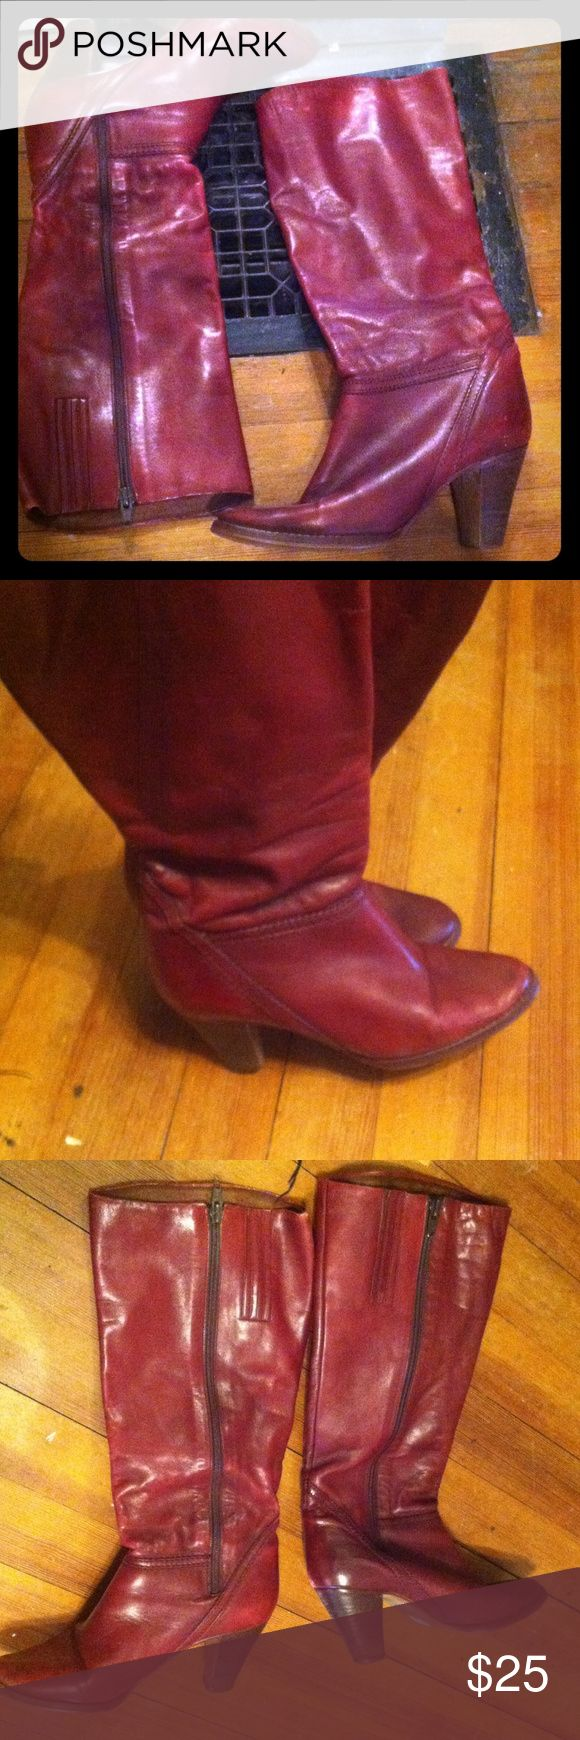 Maroon/wine red leather boots Made in Brazil dark red leather boots size 6-6.5 Shoes Heeled Boots